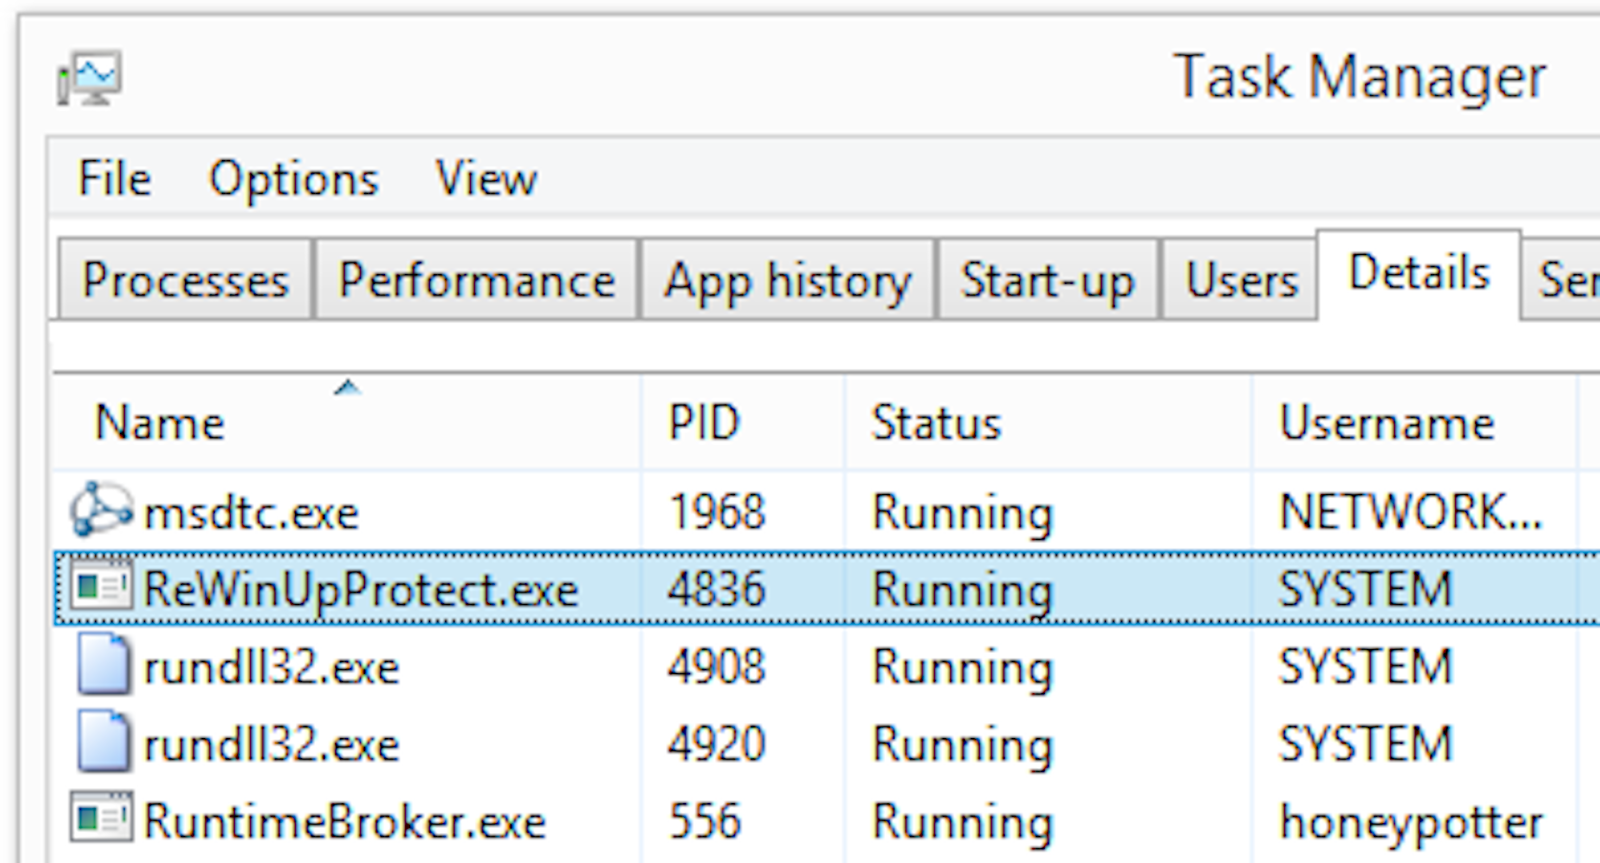 ReWinUpProtect.exe in the Windows Task Manager